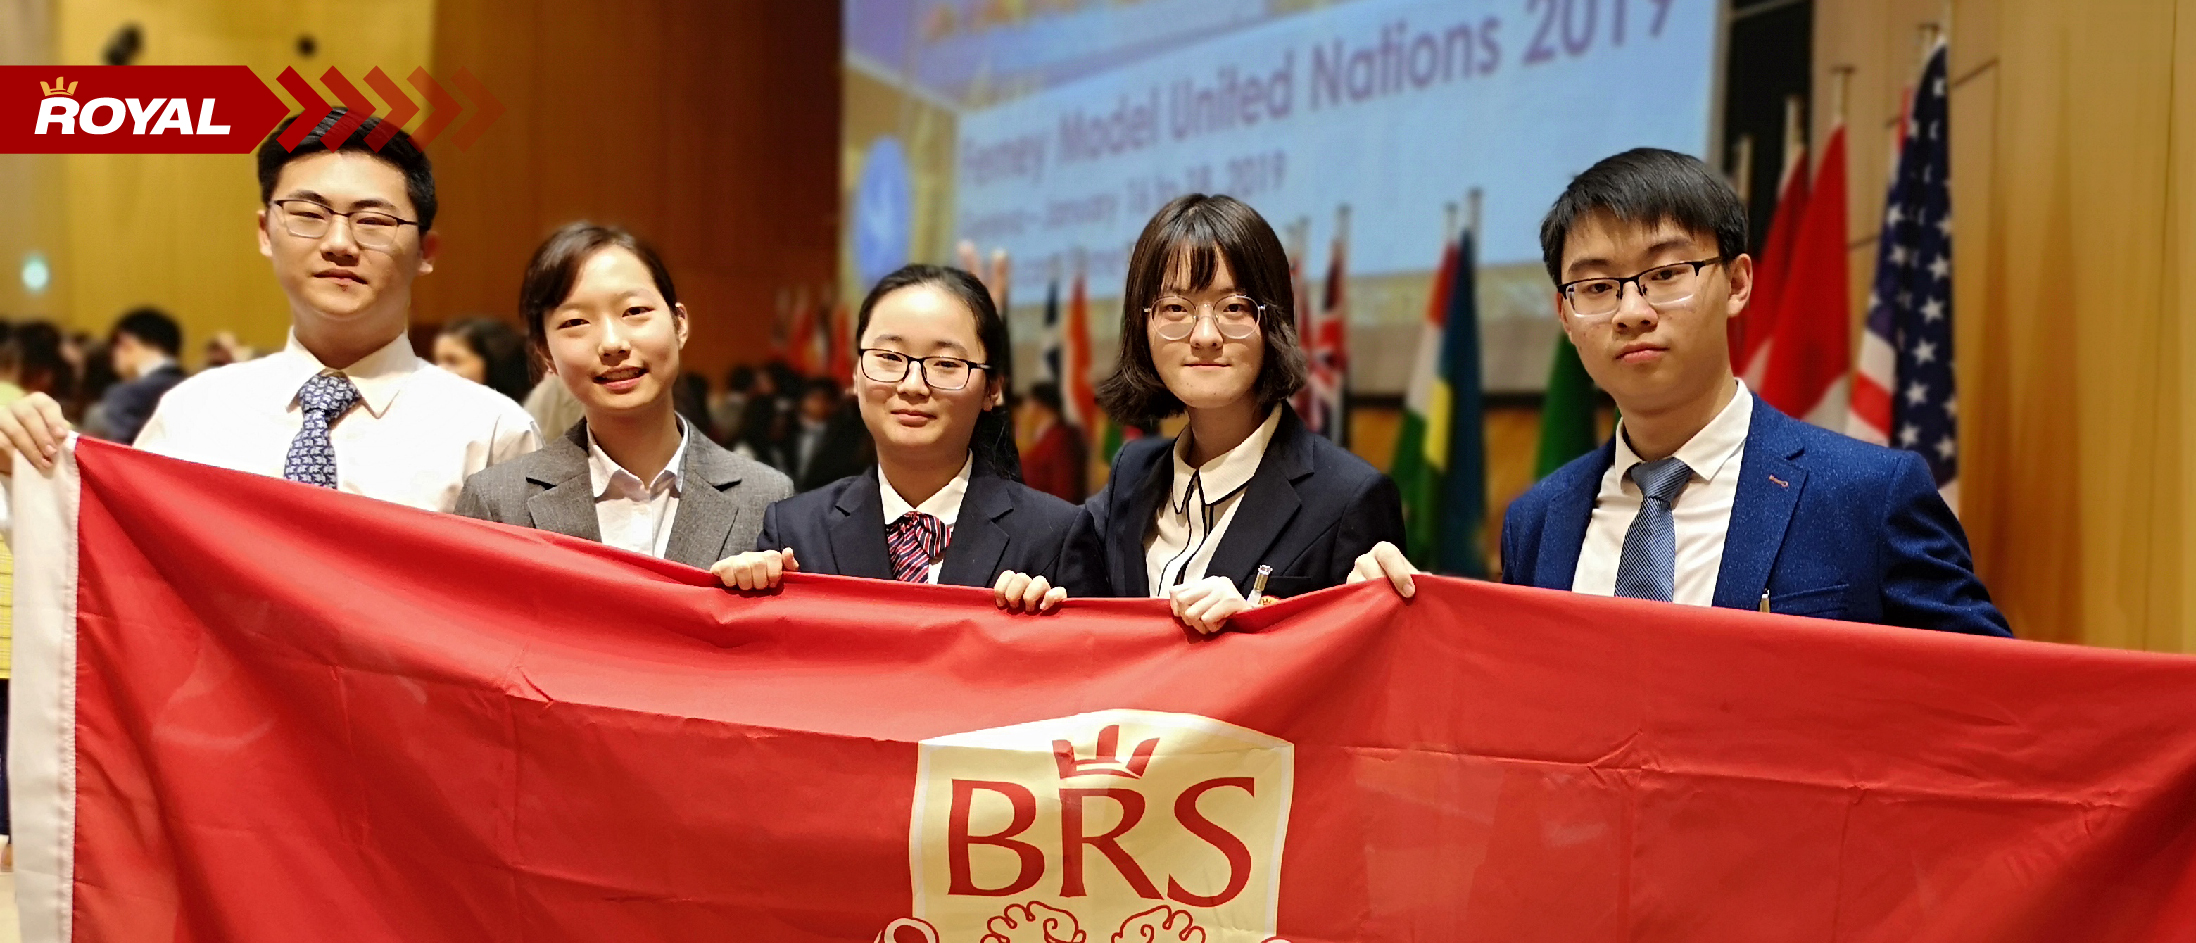 BRS the only school in China invited and designated 5 students to attend the FerMUN 2019